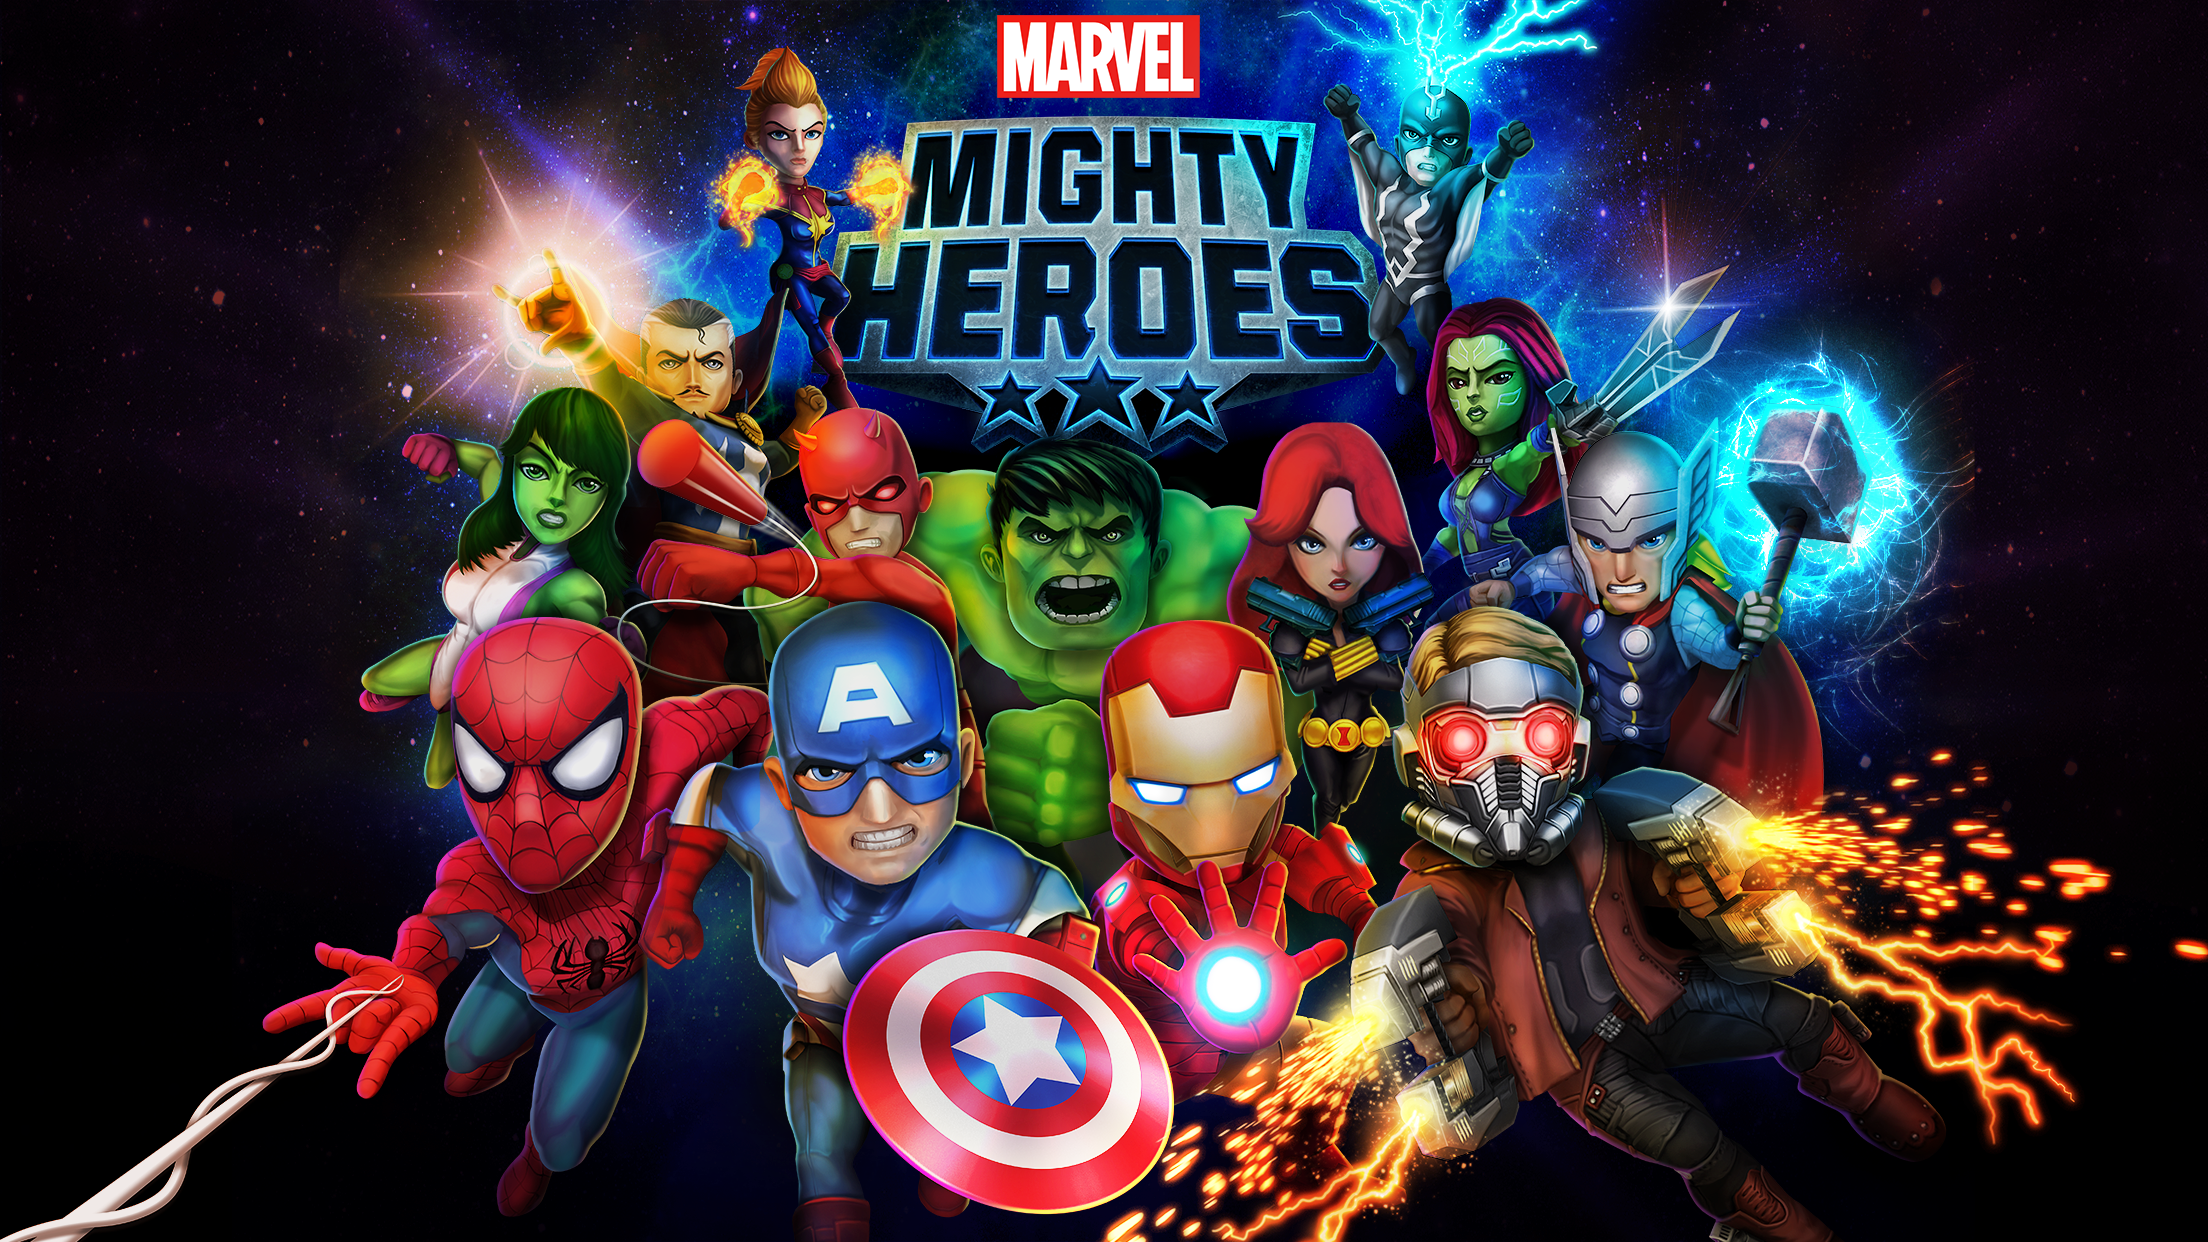 Marvel-Mighty-Heroes-Dena-Corp.-ios-Action-iphone-ipad-tipps-tricks-cheats-android-ios-windows-apps-hack-spiel-game-02